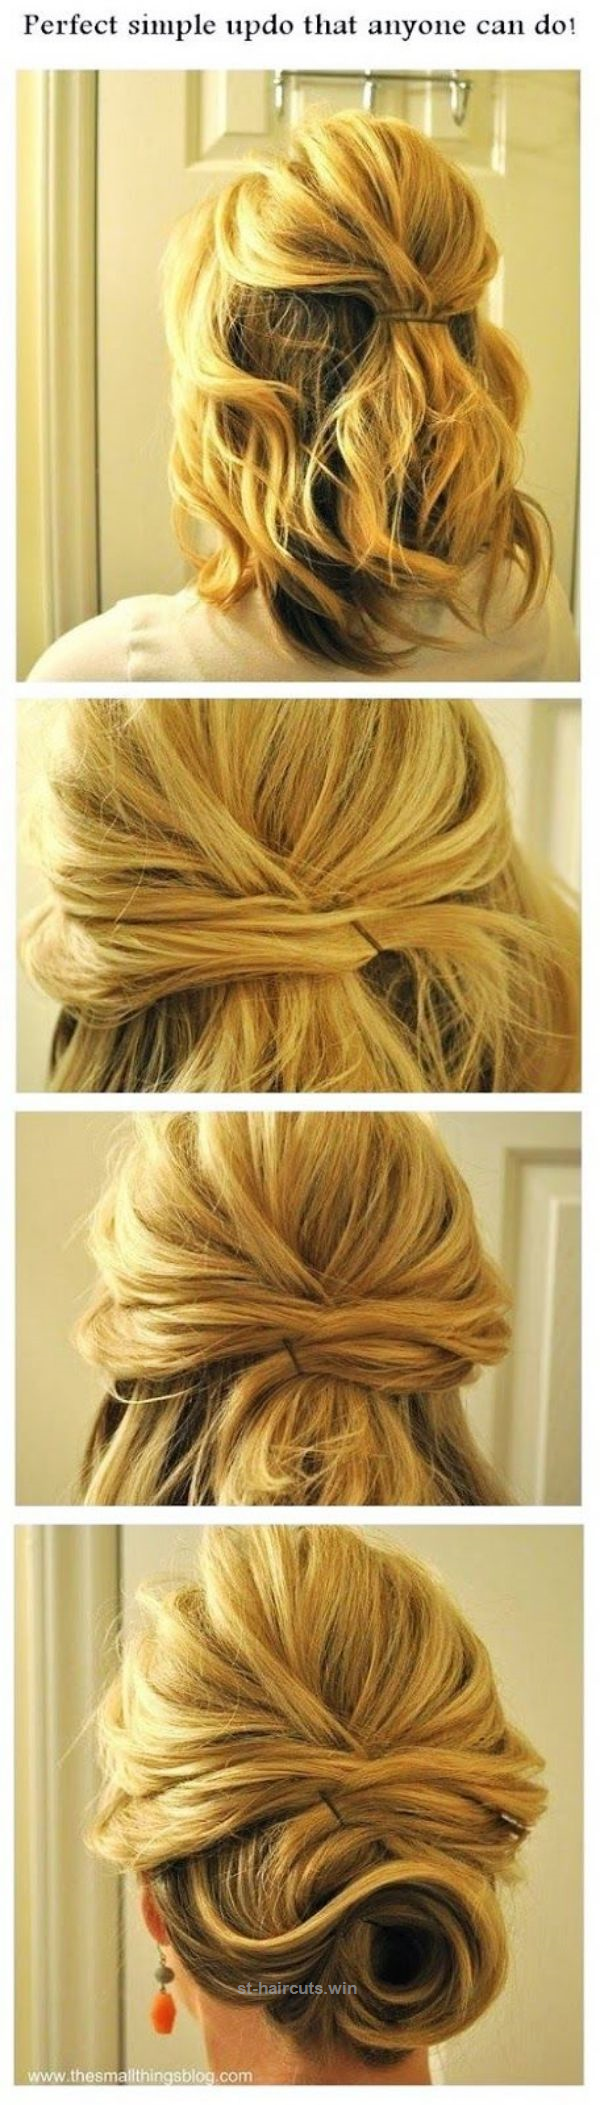 Perfect hair updo for short hair easy hairstyles updo and short hair